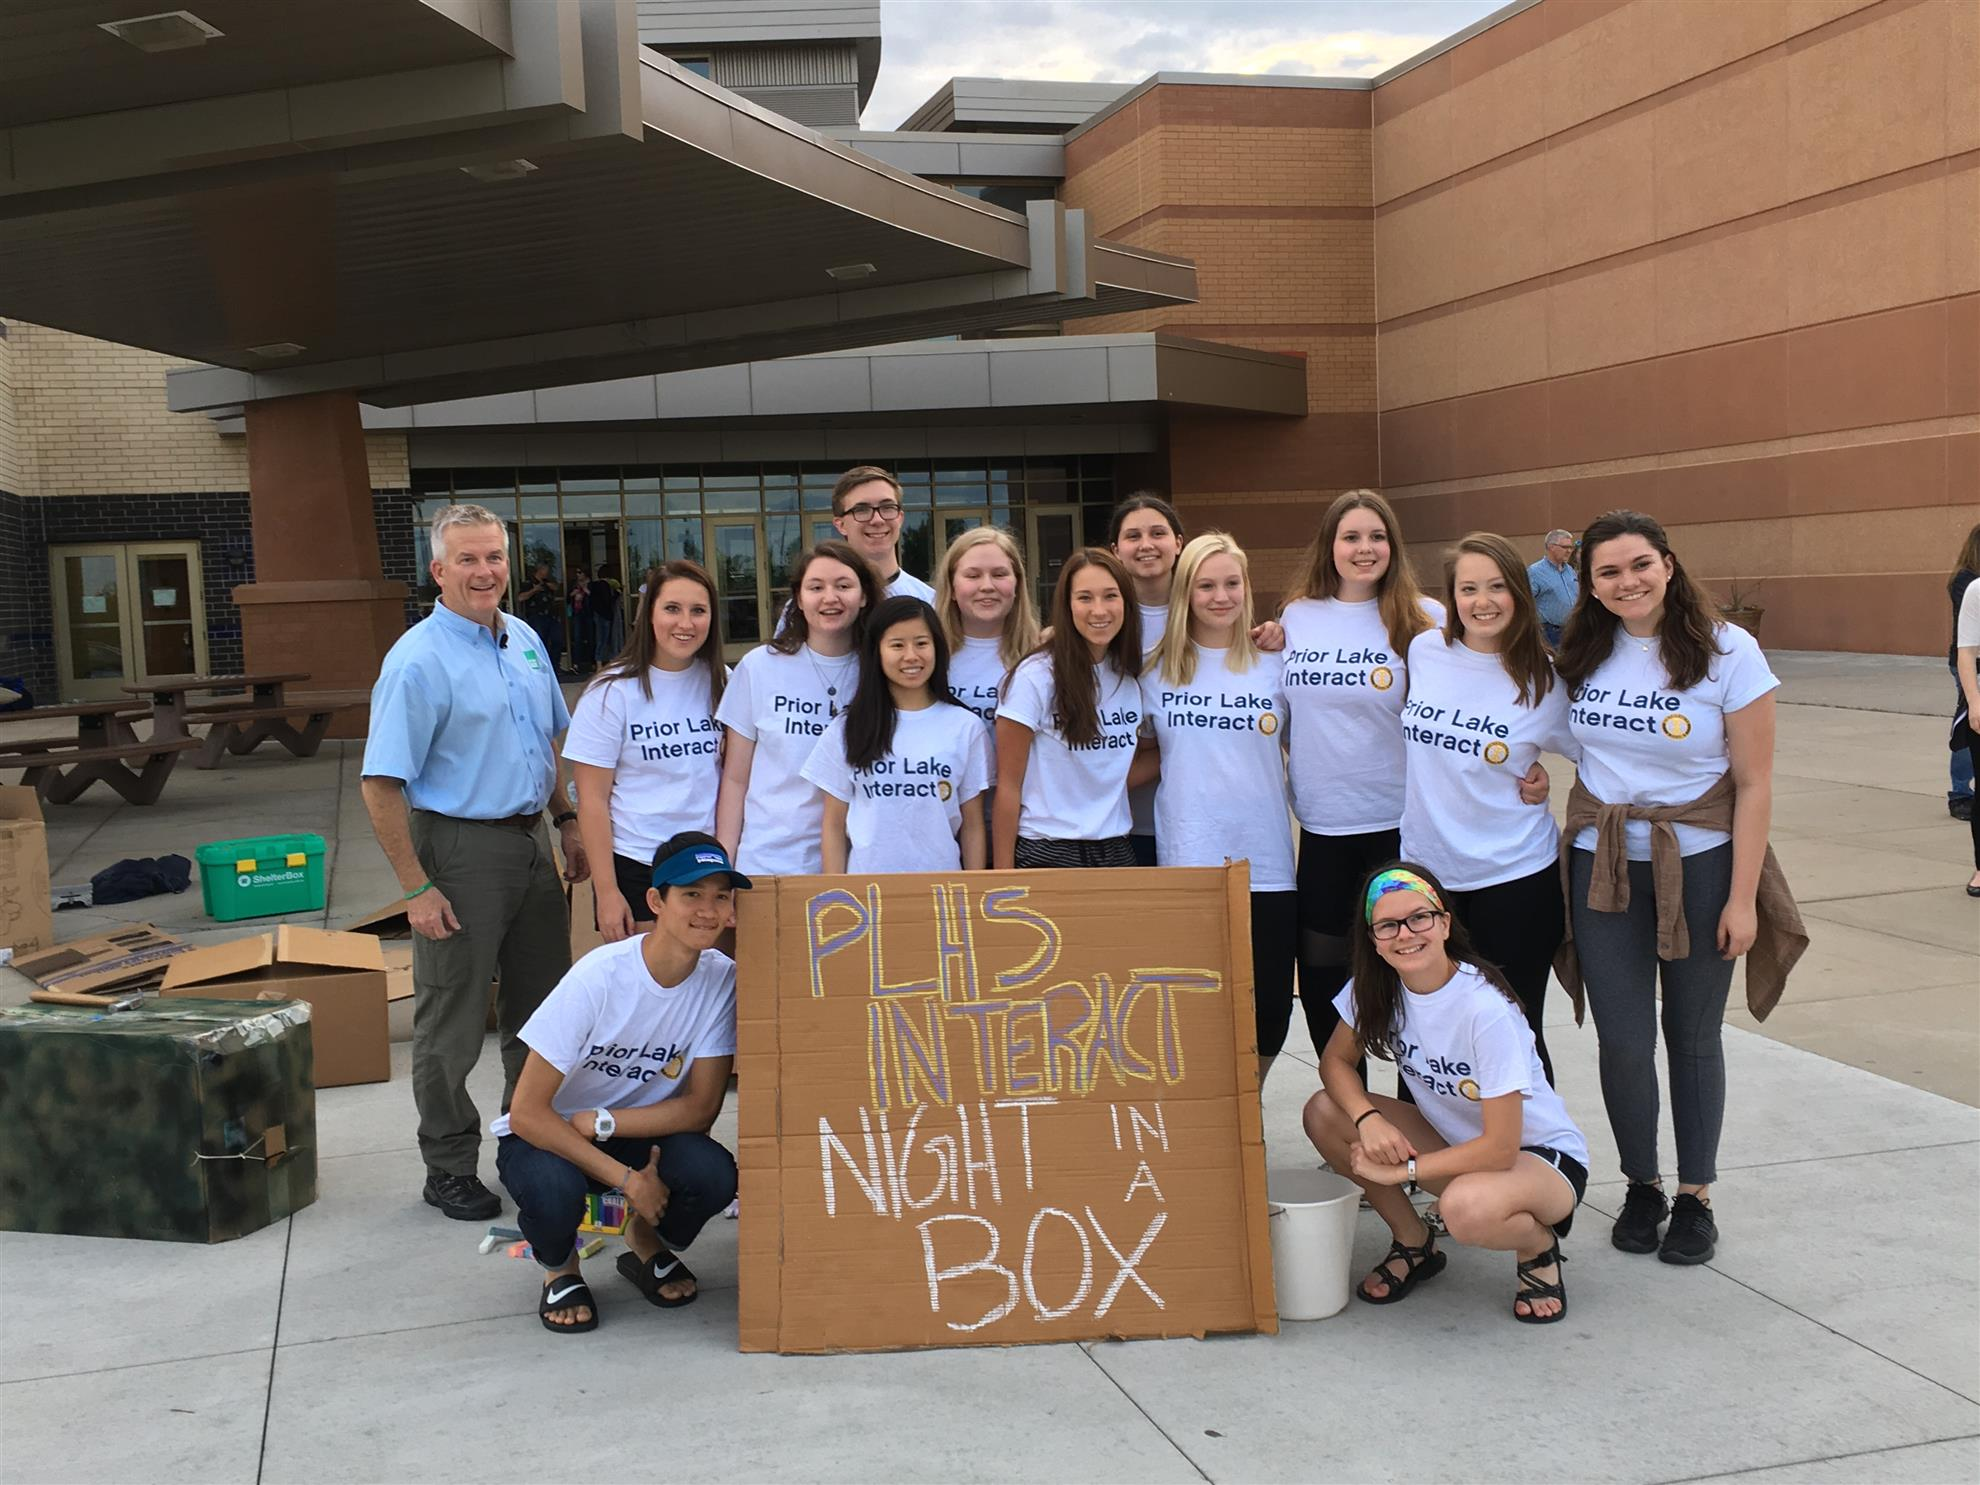 ... They Exceeded Their Goal Of Raising $2,500 By Raising Over $3,700! That  Is Enough To Purchase 3 ShelterBox Boxes That Will Be Sent To Areas  Suffering ...